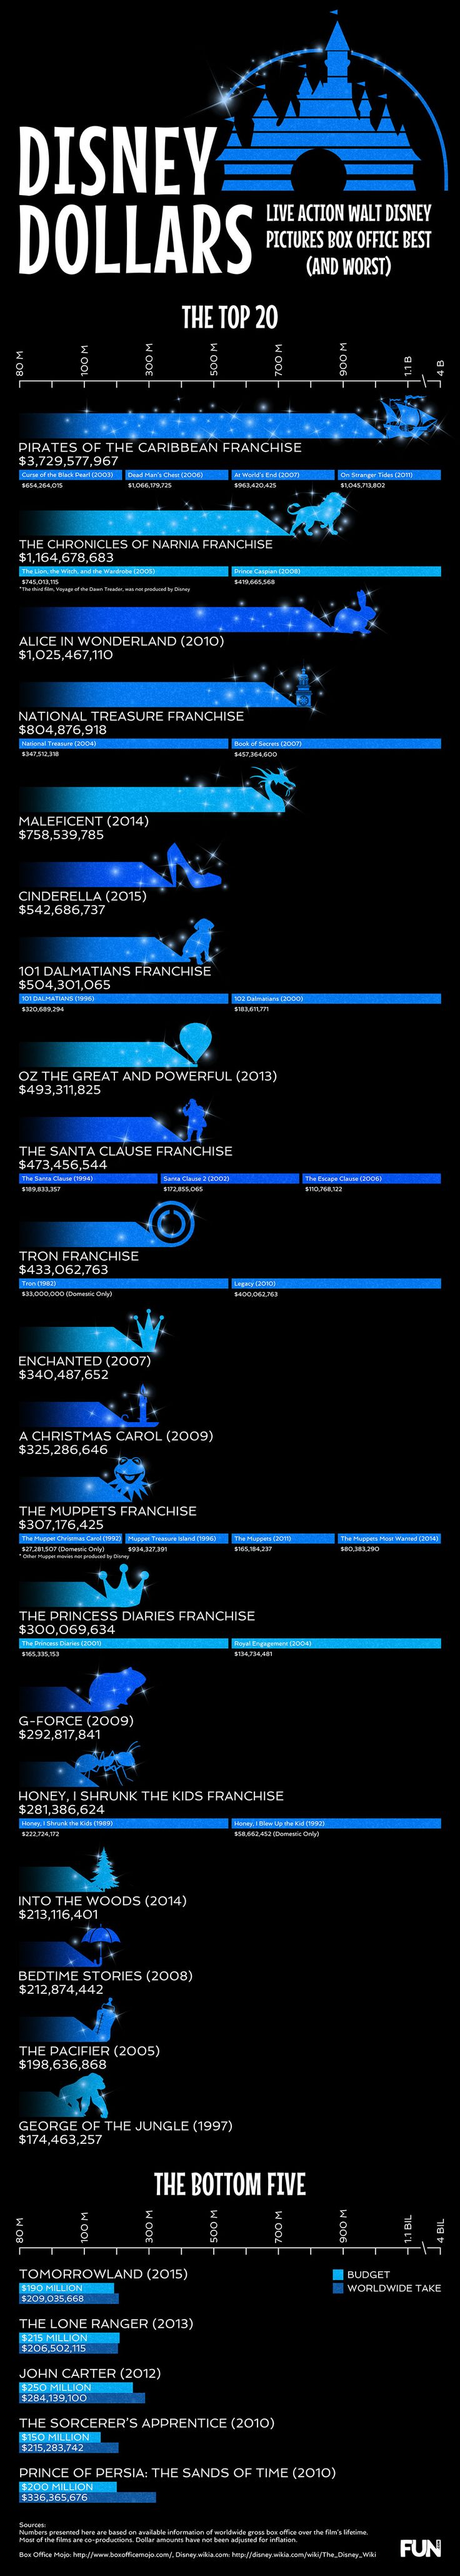 Disney Live Action Movies: Best (And Worst) infographic